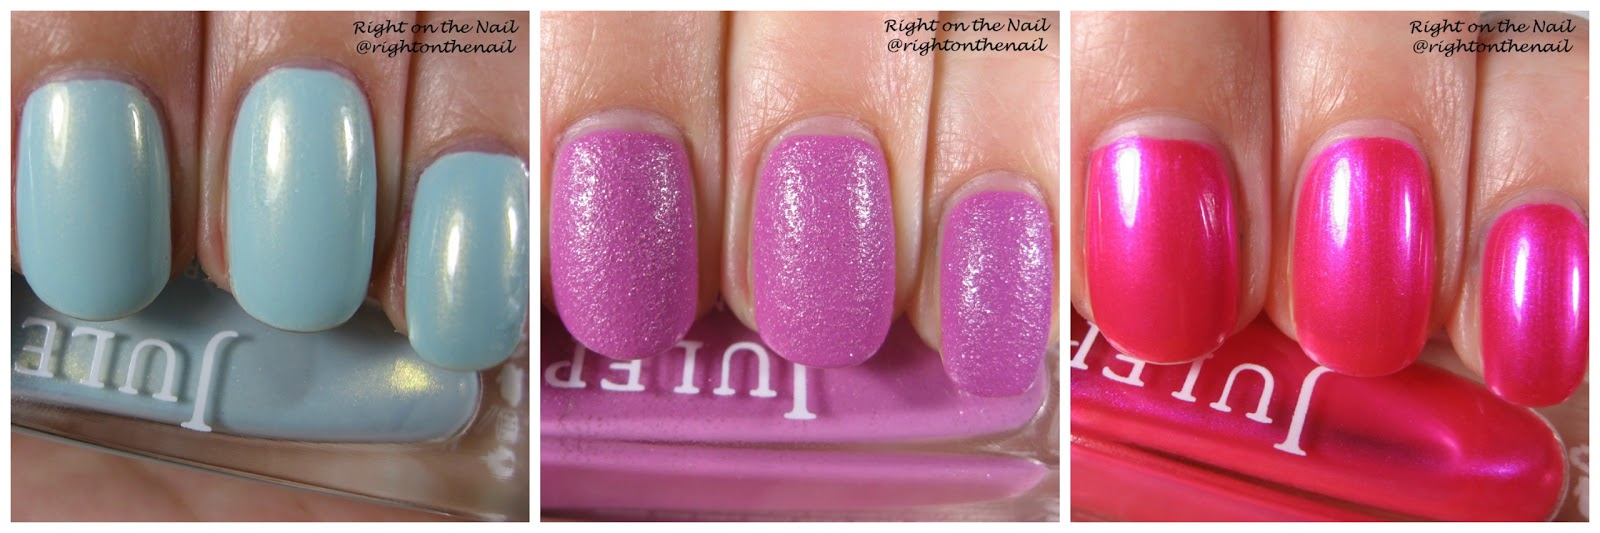 Right on the Nail: Right on the Nail ~ Julep Maven Nail Polish ...